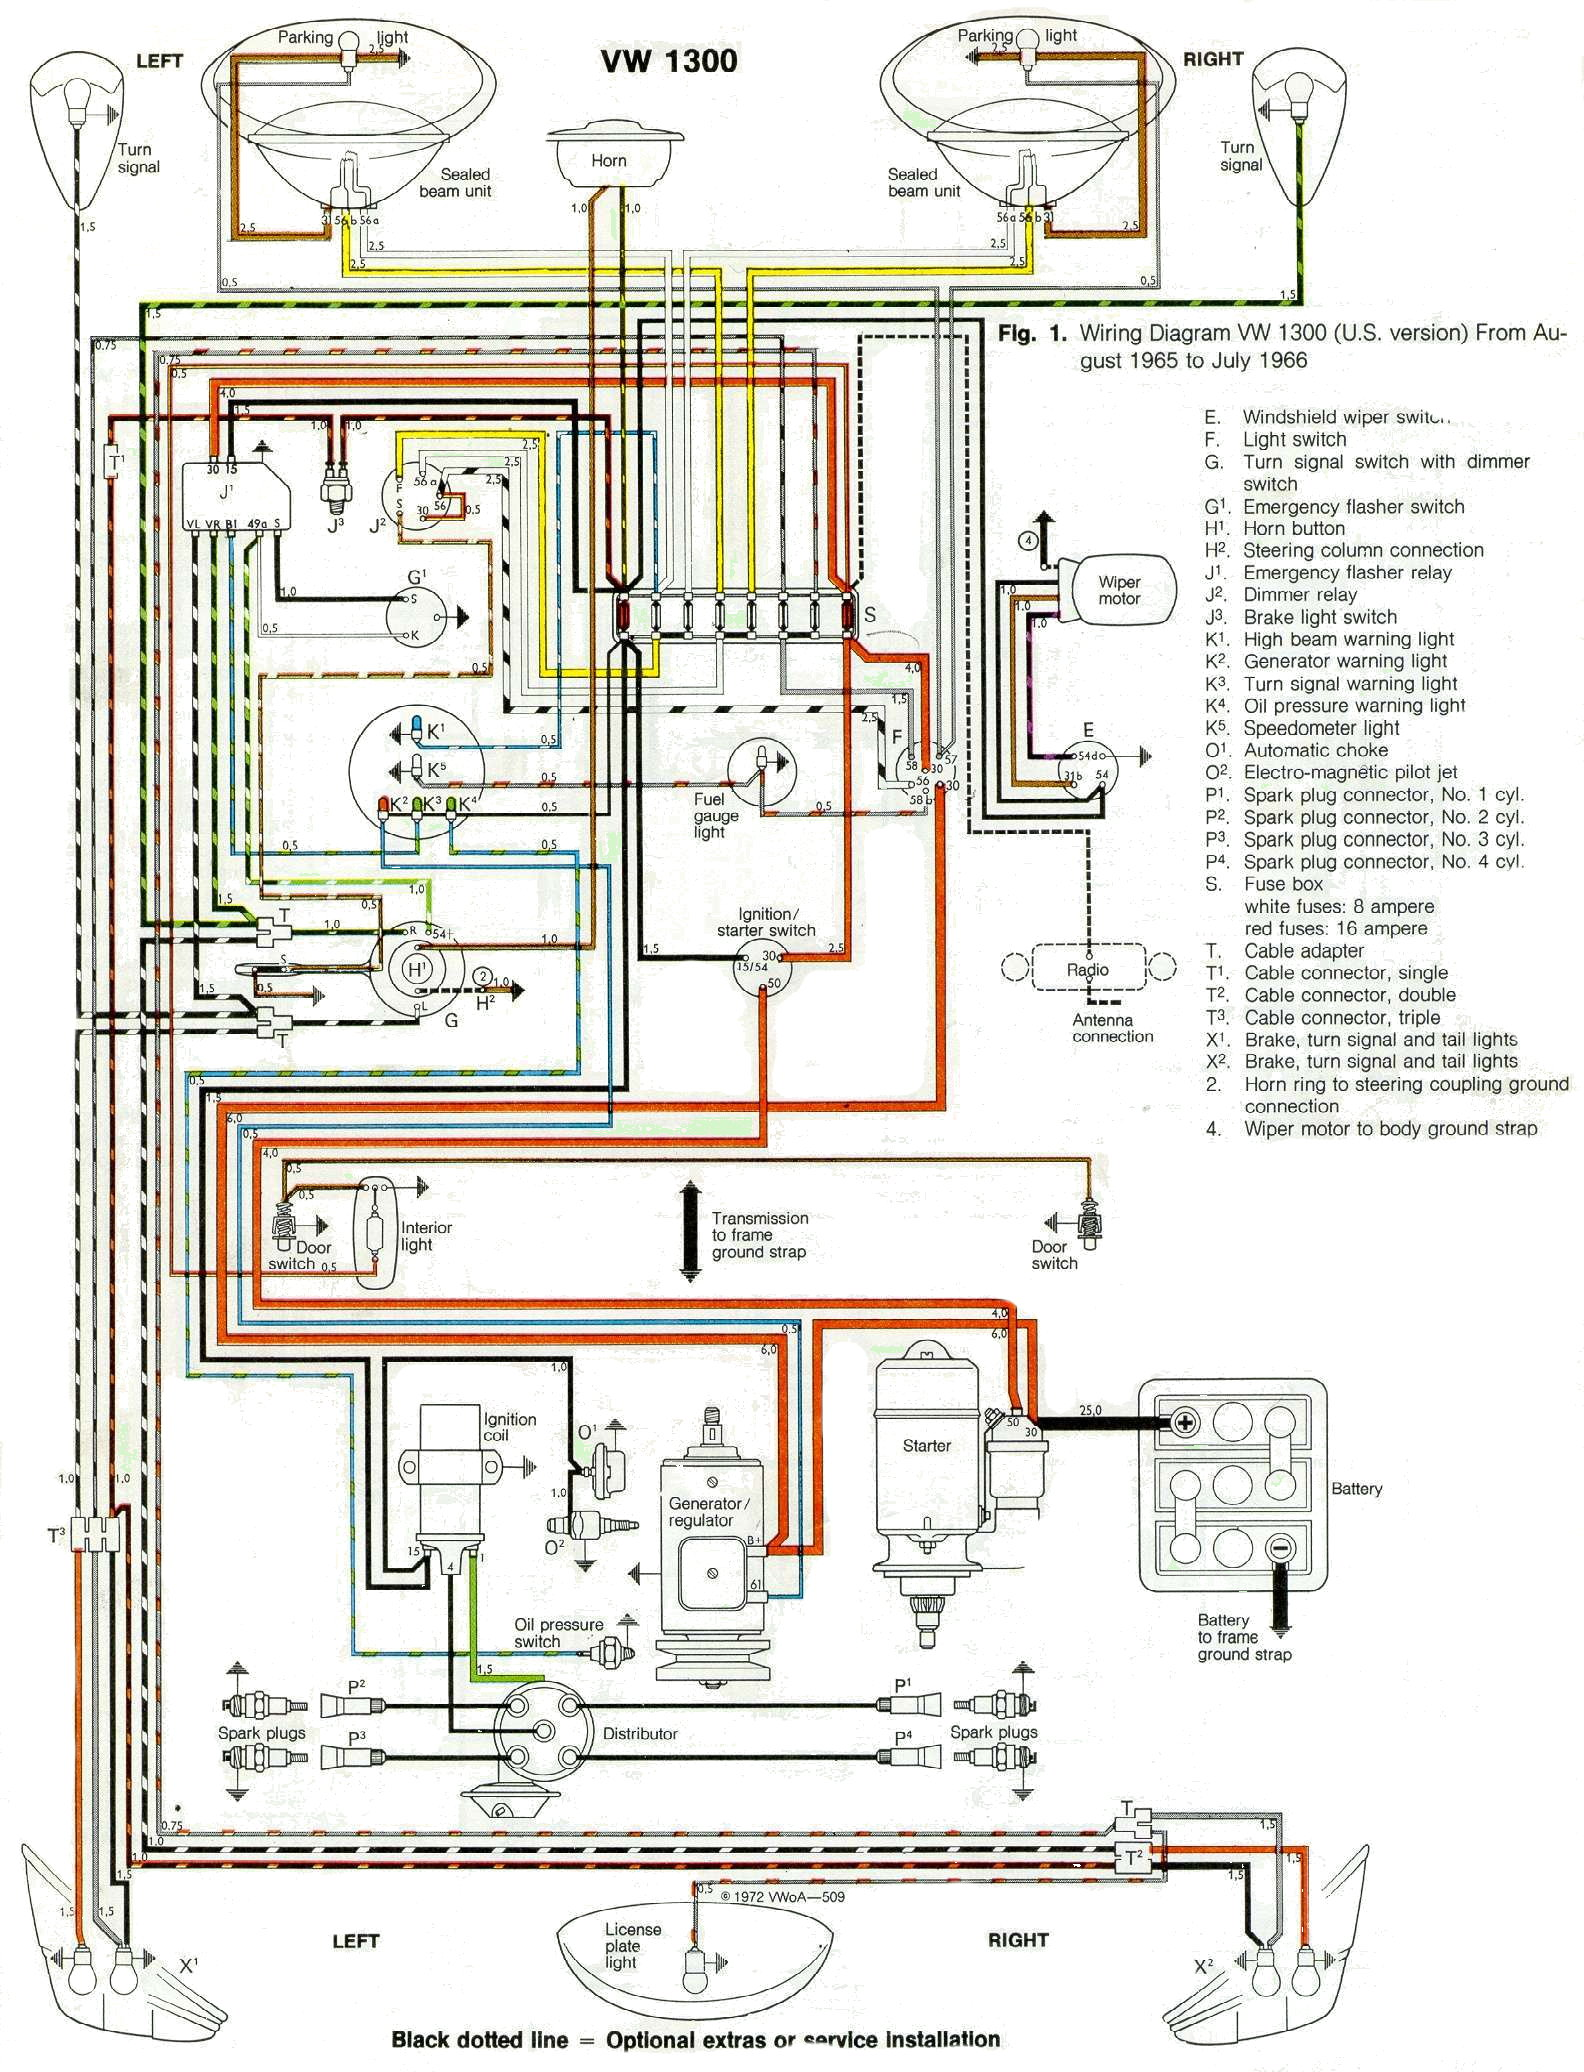 Volkswagen Wiring Diagram: 1966 Wiring Diagram,Design